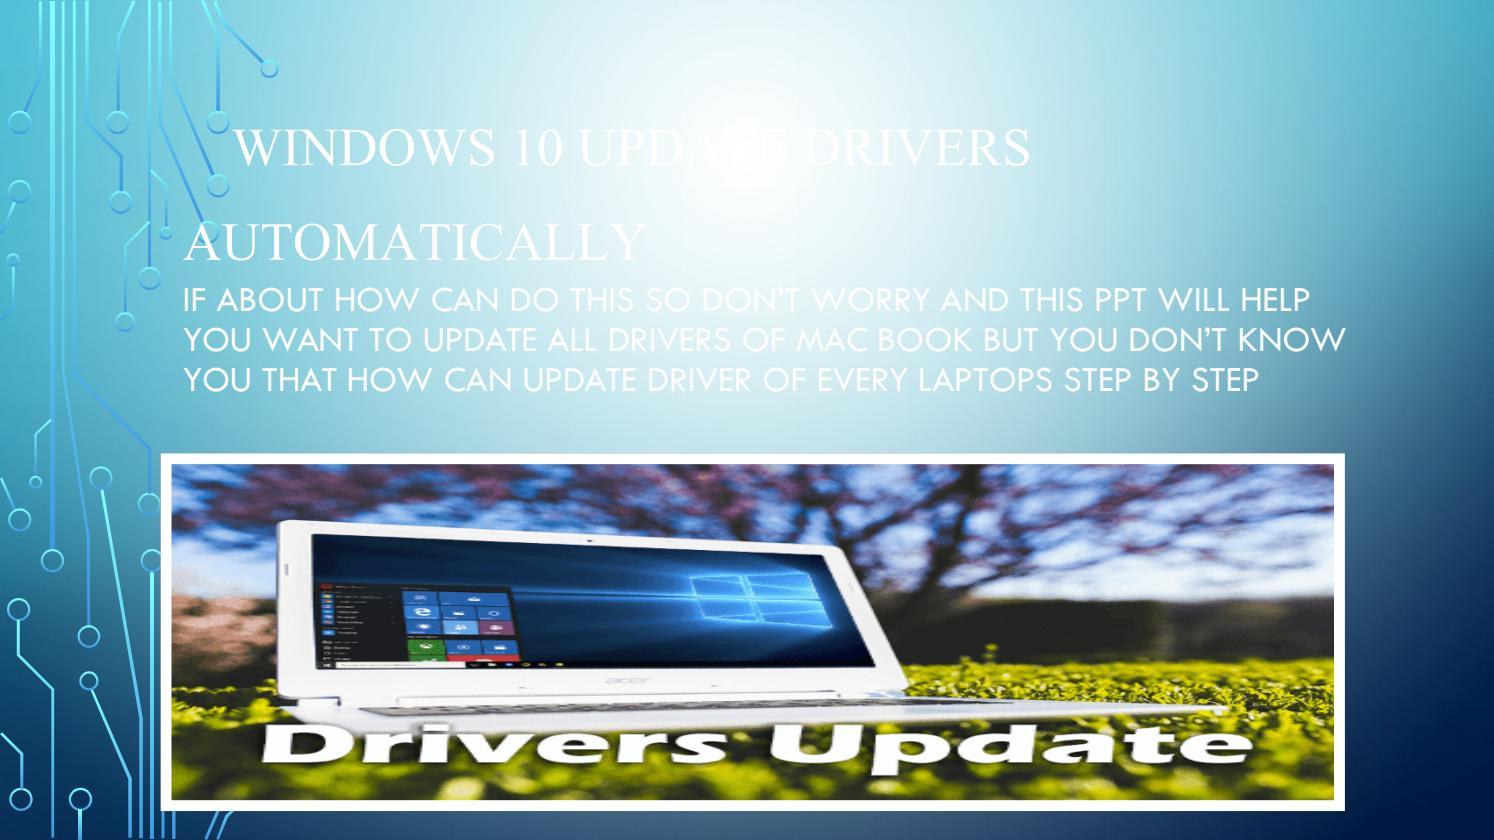 How To Solve Driver Issues of Computer by This PPT by Palak Mehta